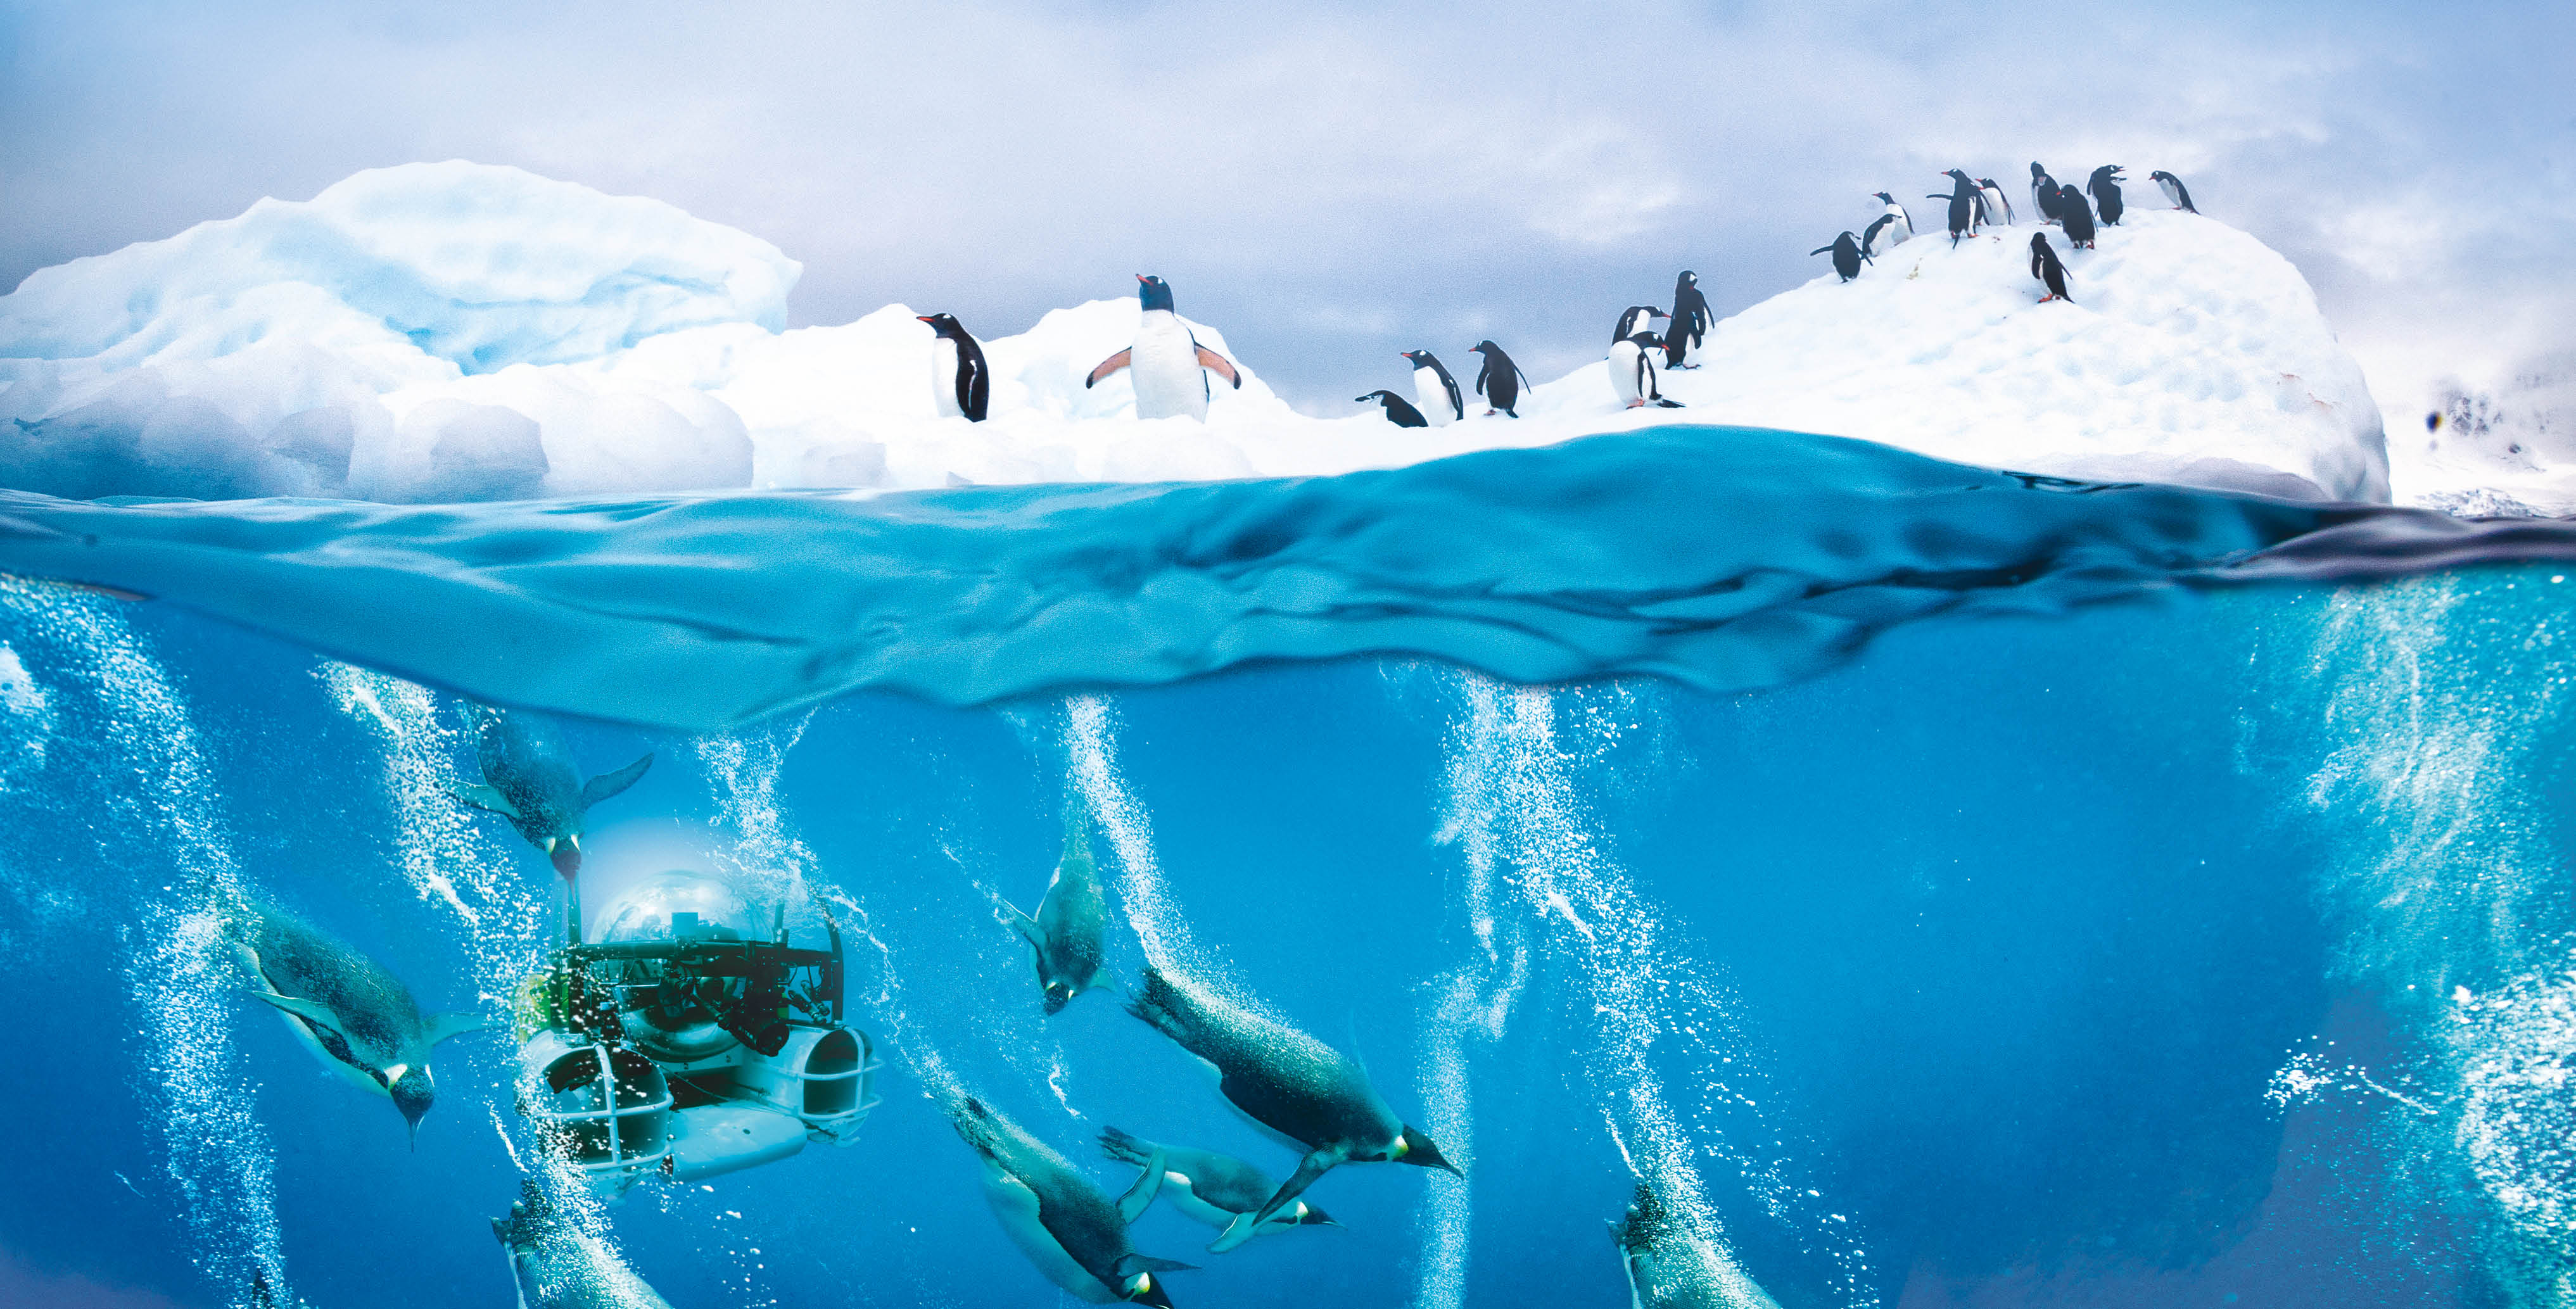 Diving underwater with the penguins in a submarine